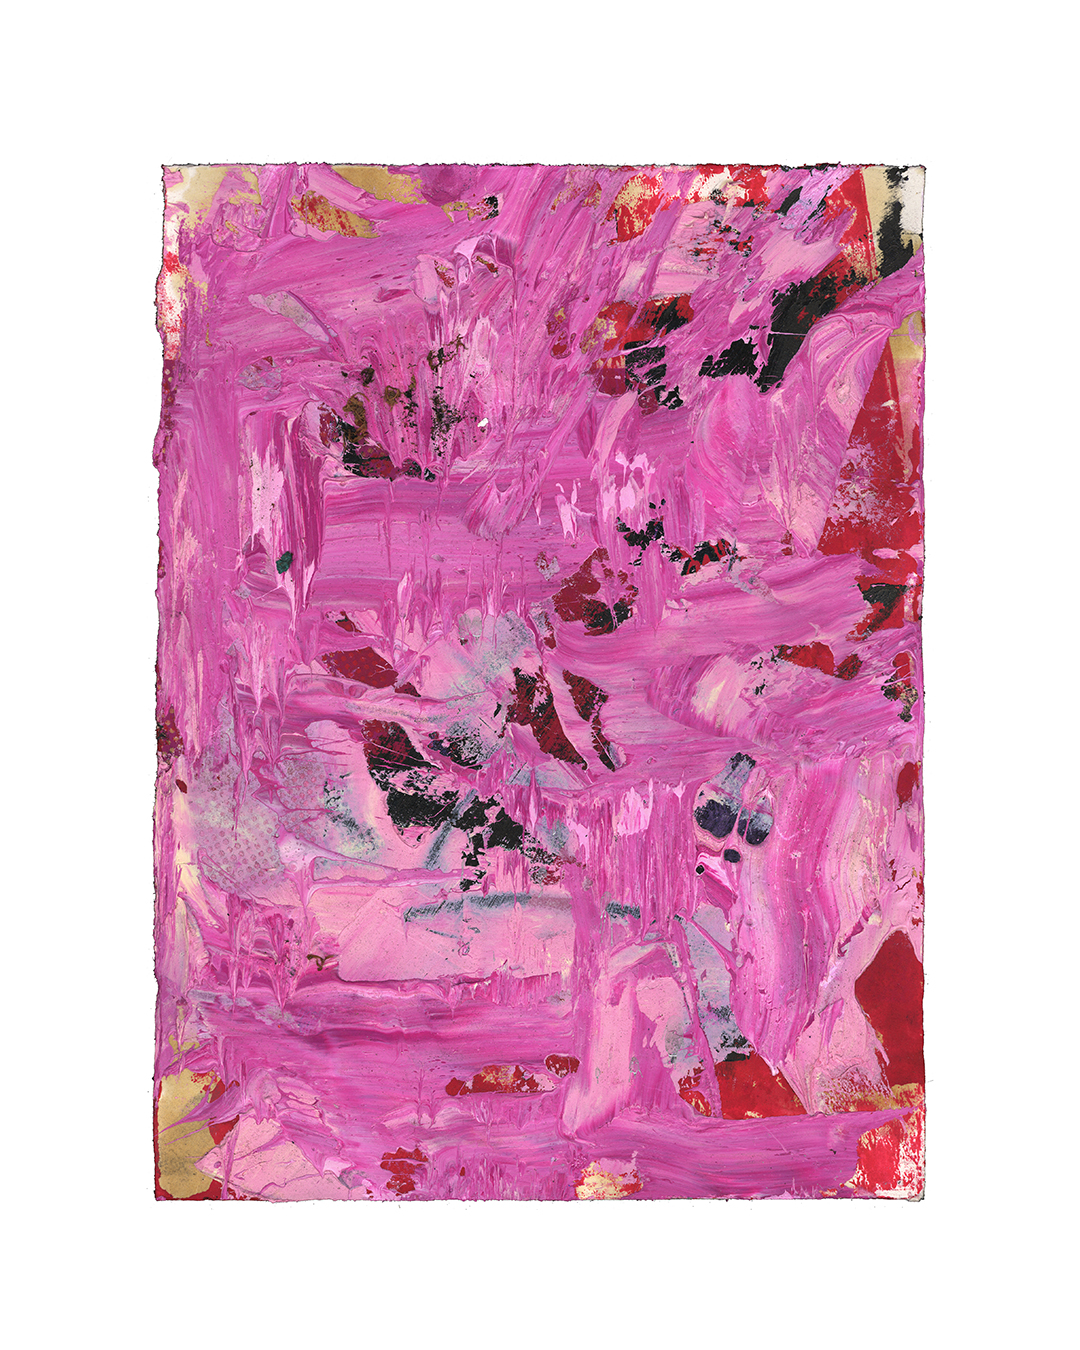 Piet Dieleman, untitled, 2020, painting, oil, tempera, paint, laser woodprint on paper, 395 x 285 mm, €930